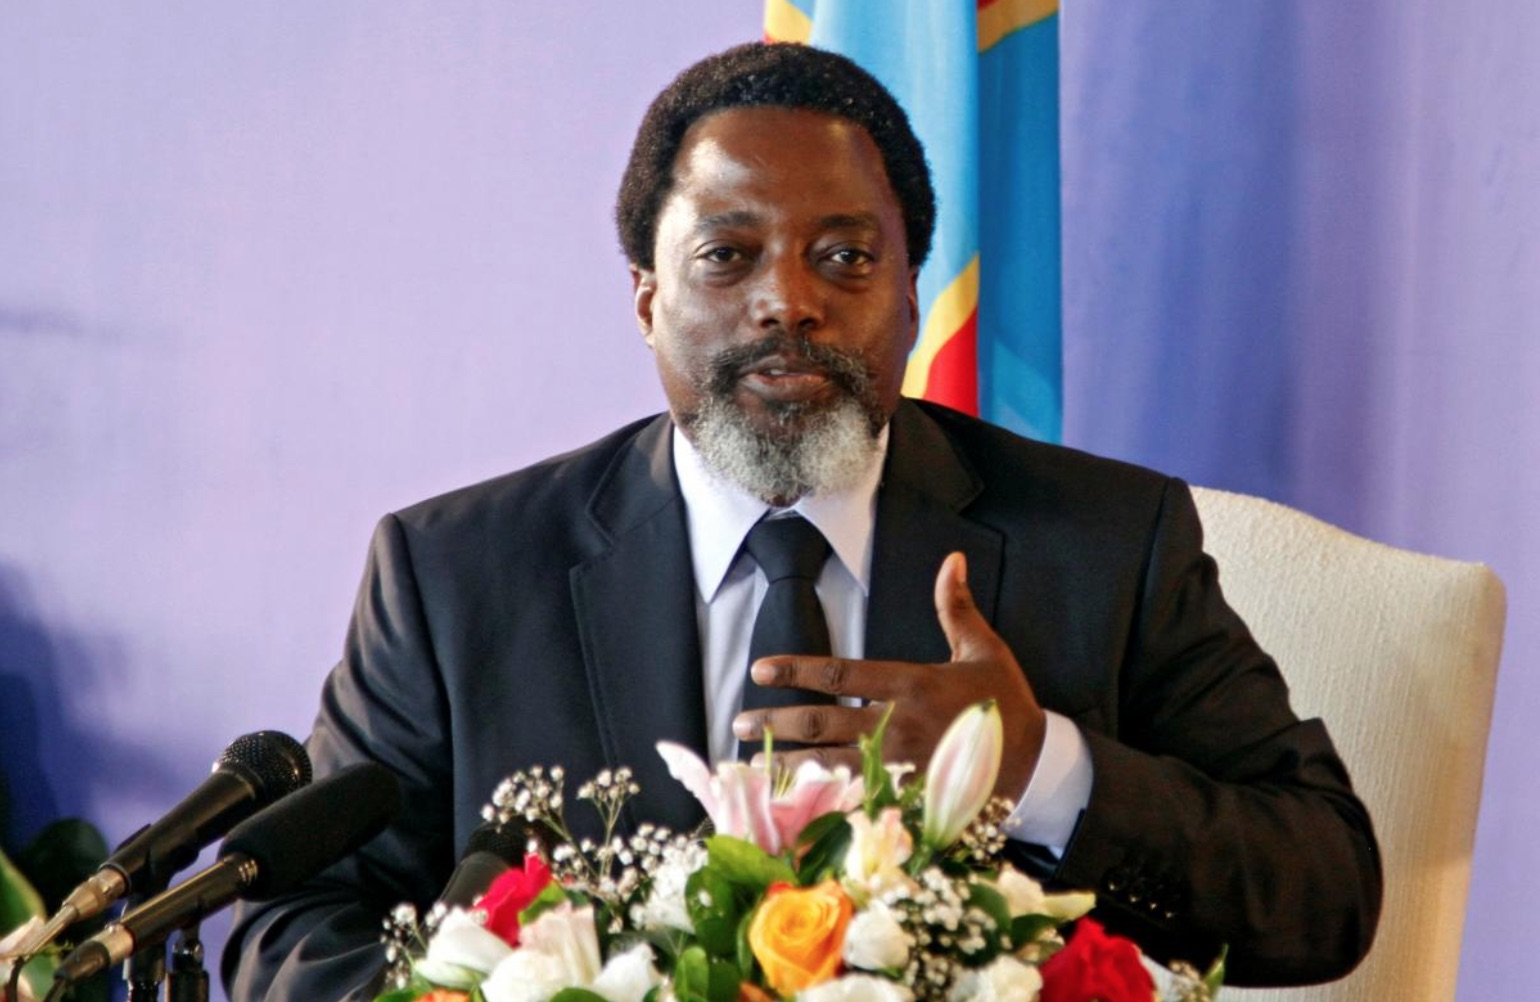 Kabila addressed the ongoing election stall as well as his views on preserving the stability of the DRC. (Reuters/Kenny Katombe).